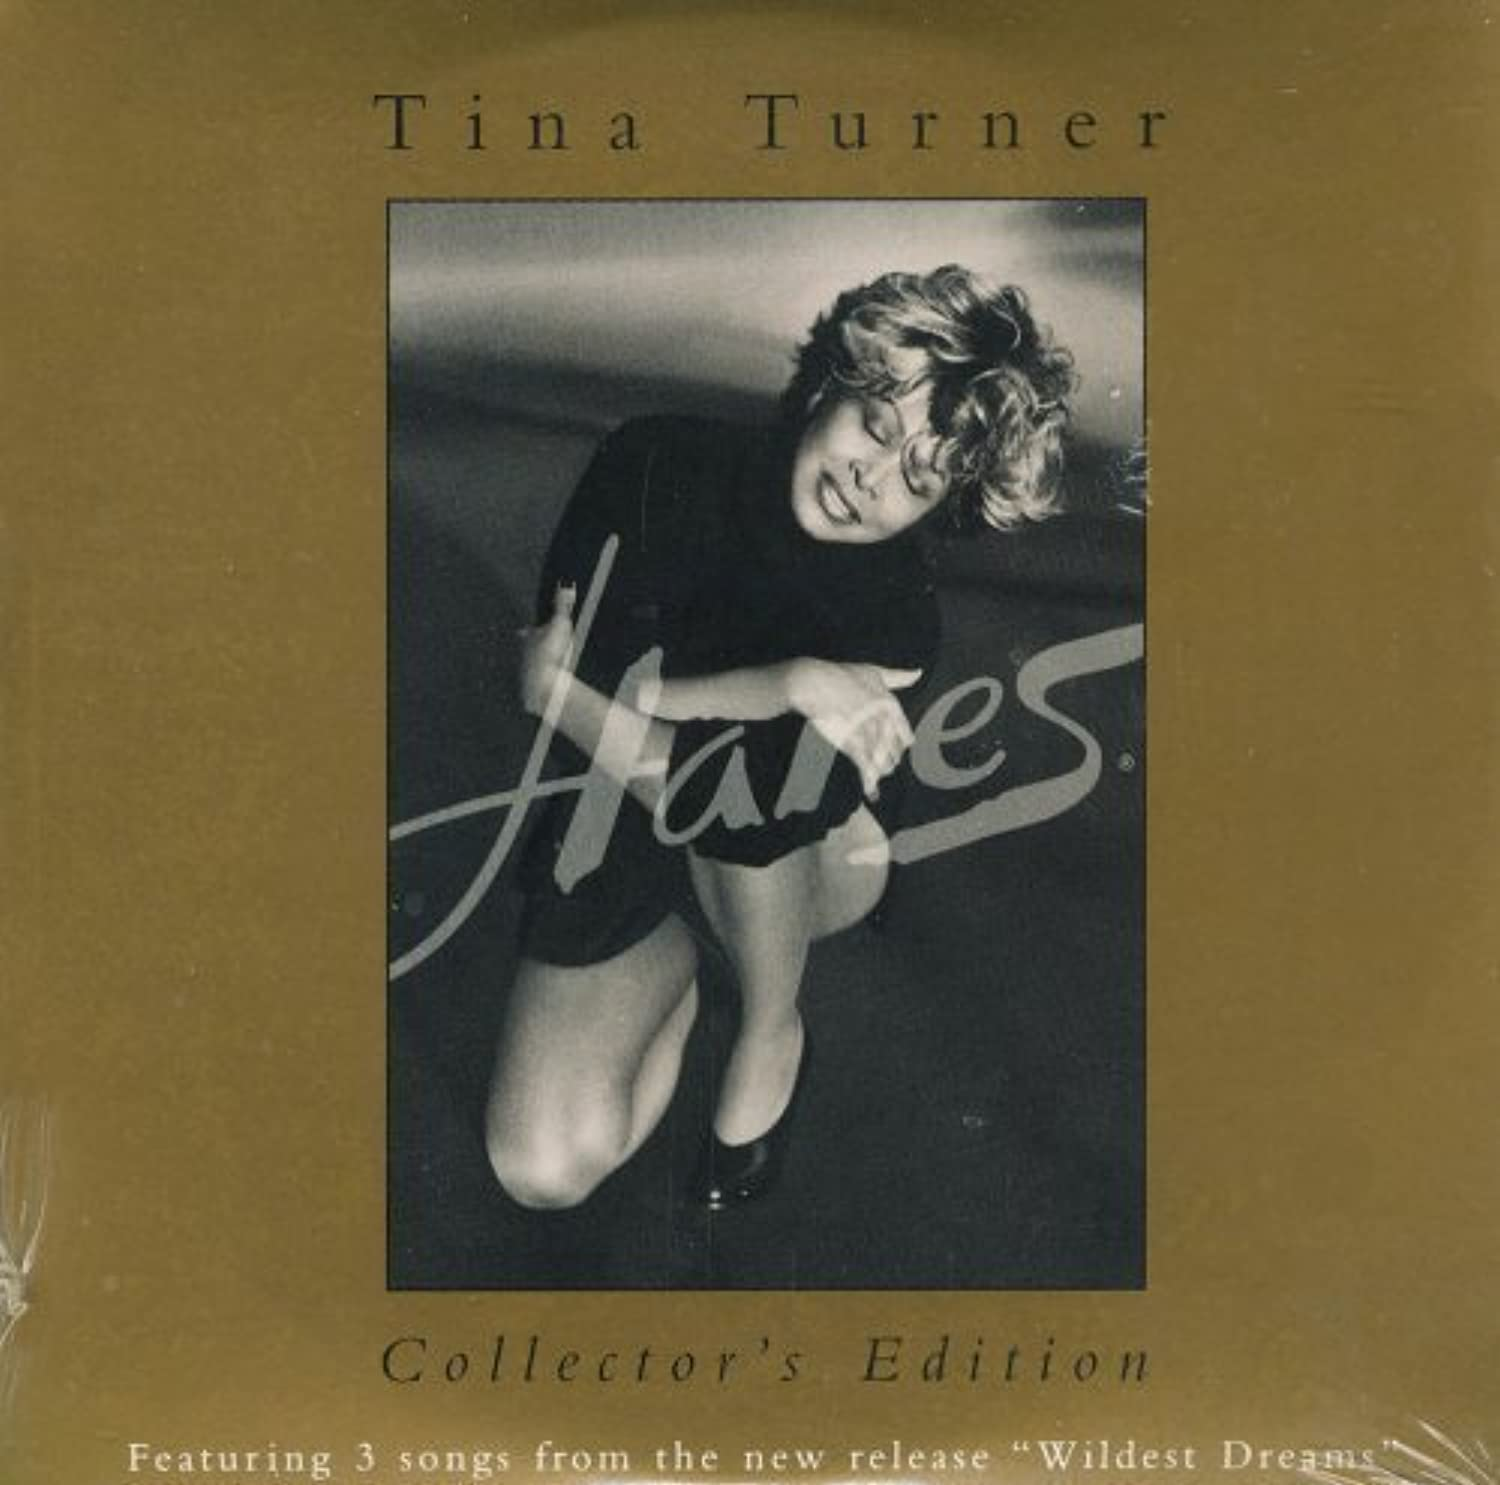 Tina Turner - Collectors Edition (Audio CD - 1996)- Single by Tina Turner - Collectors Edition (Audio CD - 1996)- Single